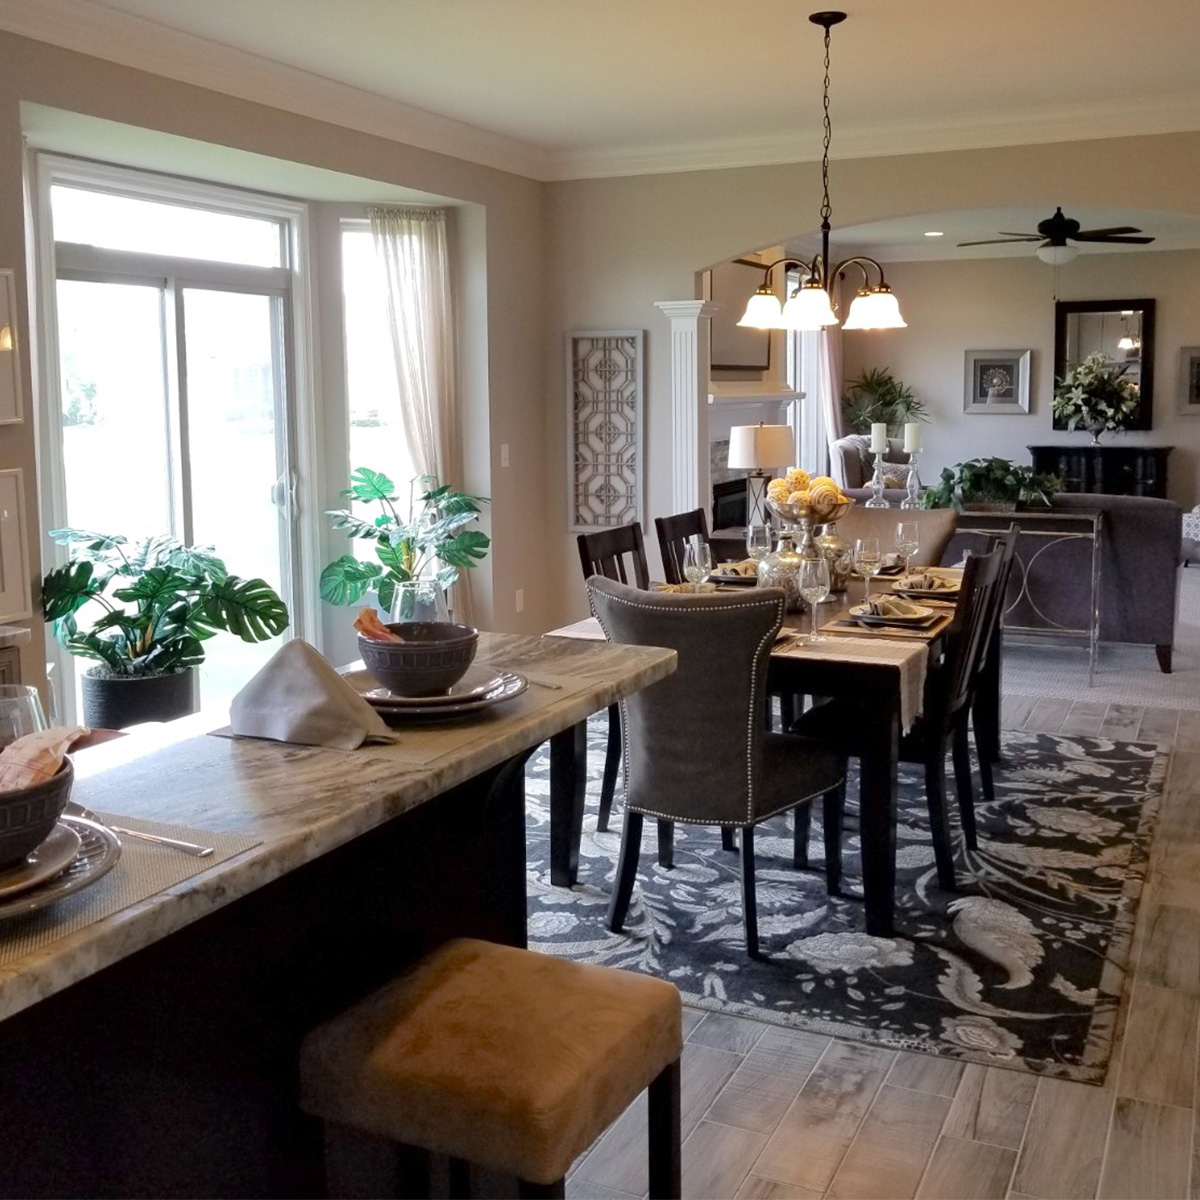 kitchen-dining-family-room